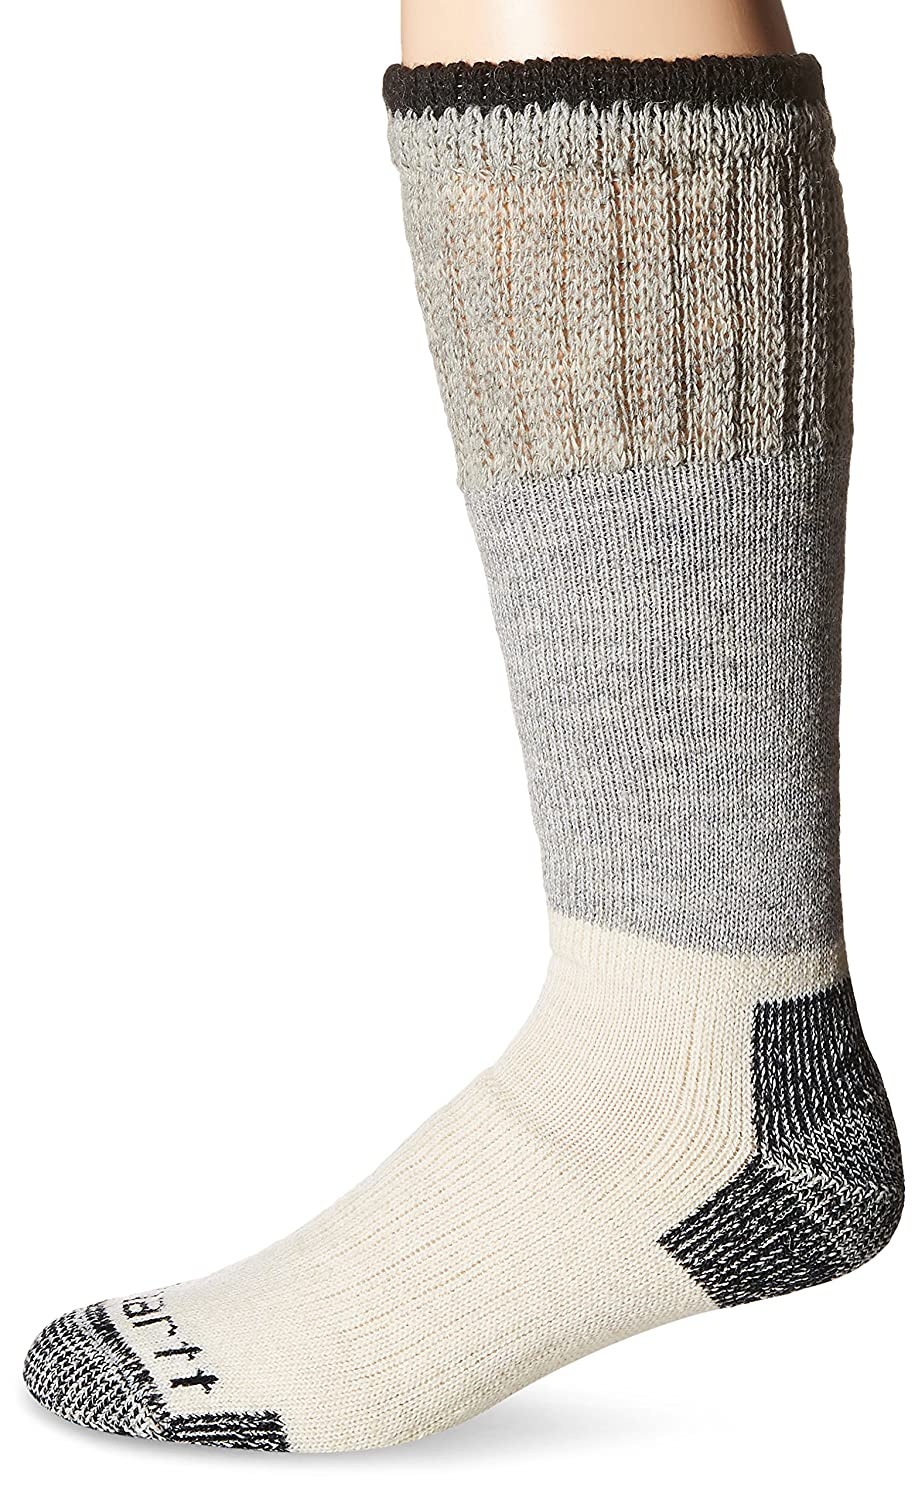 Carhartt Original Arctic Wool Boot Socks